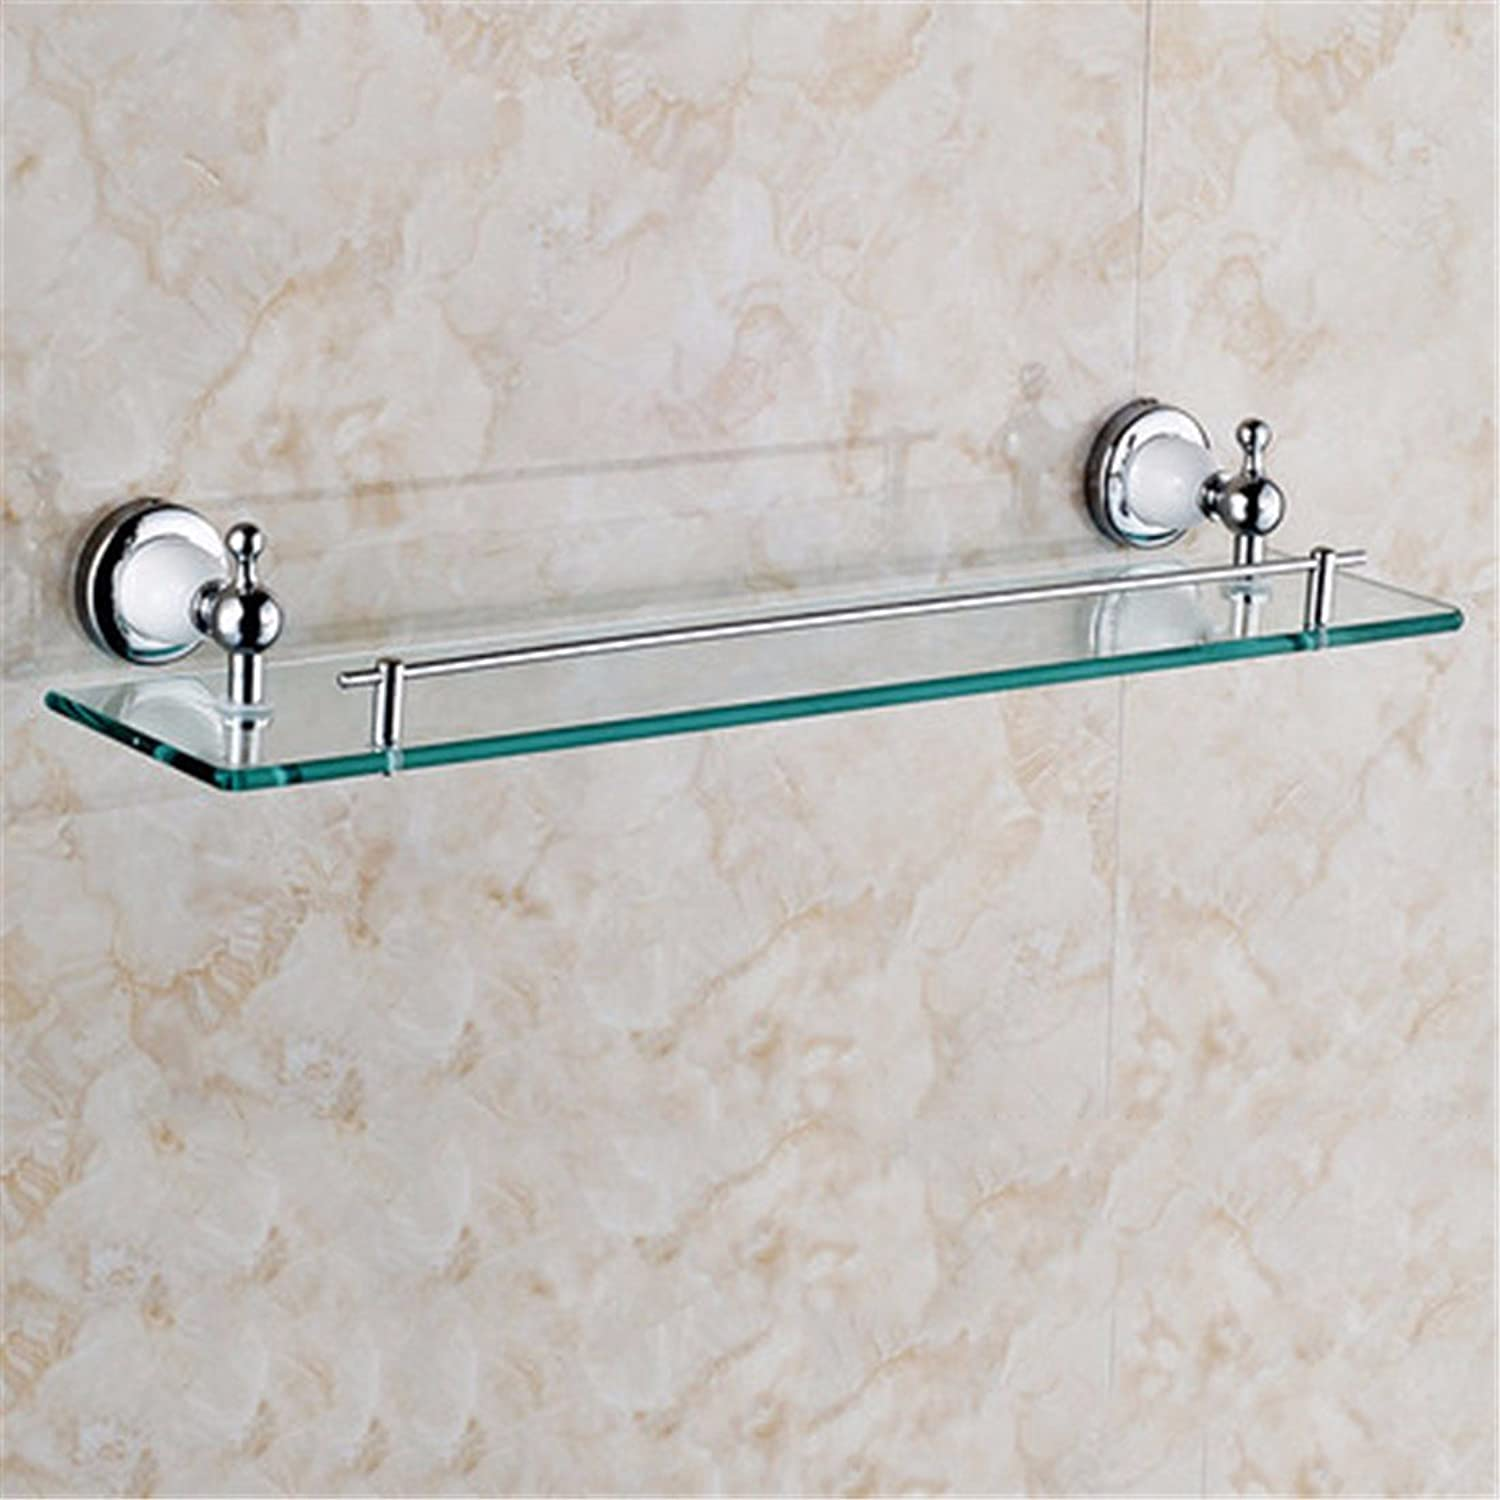 Continental copper grill white paint silver Bathroom Wall-packaged Toilet brush holder soap box, built-in shelf 1 B